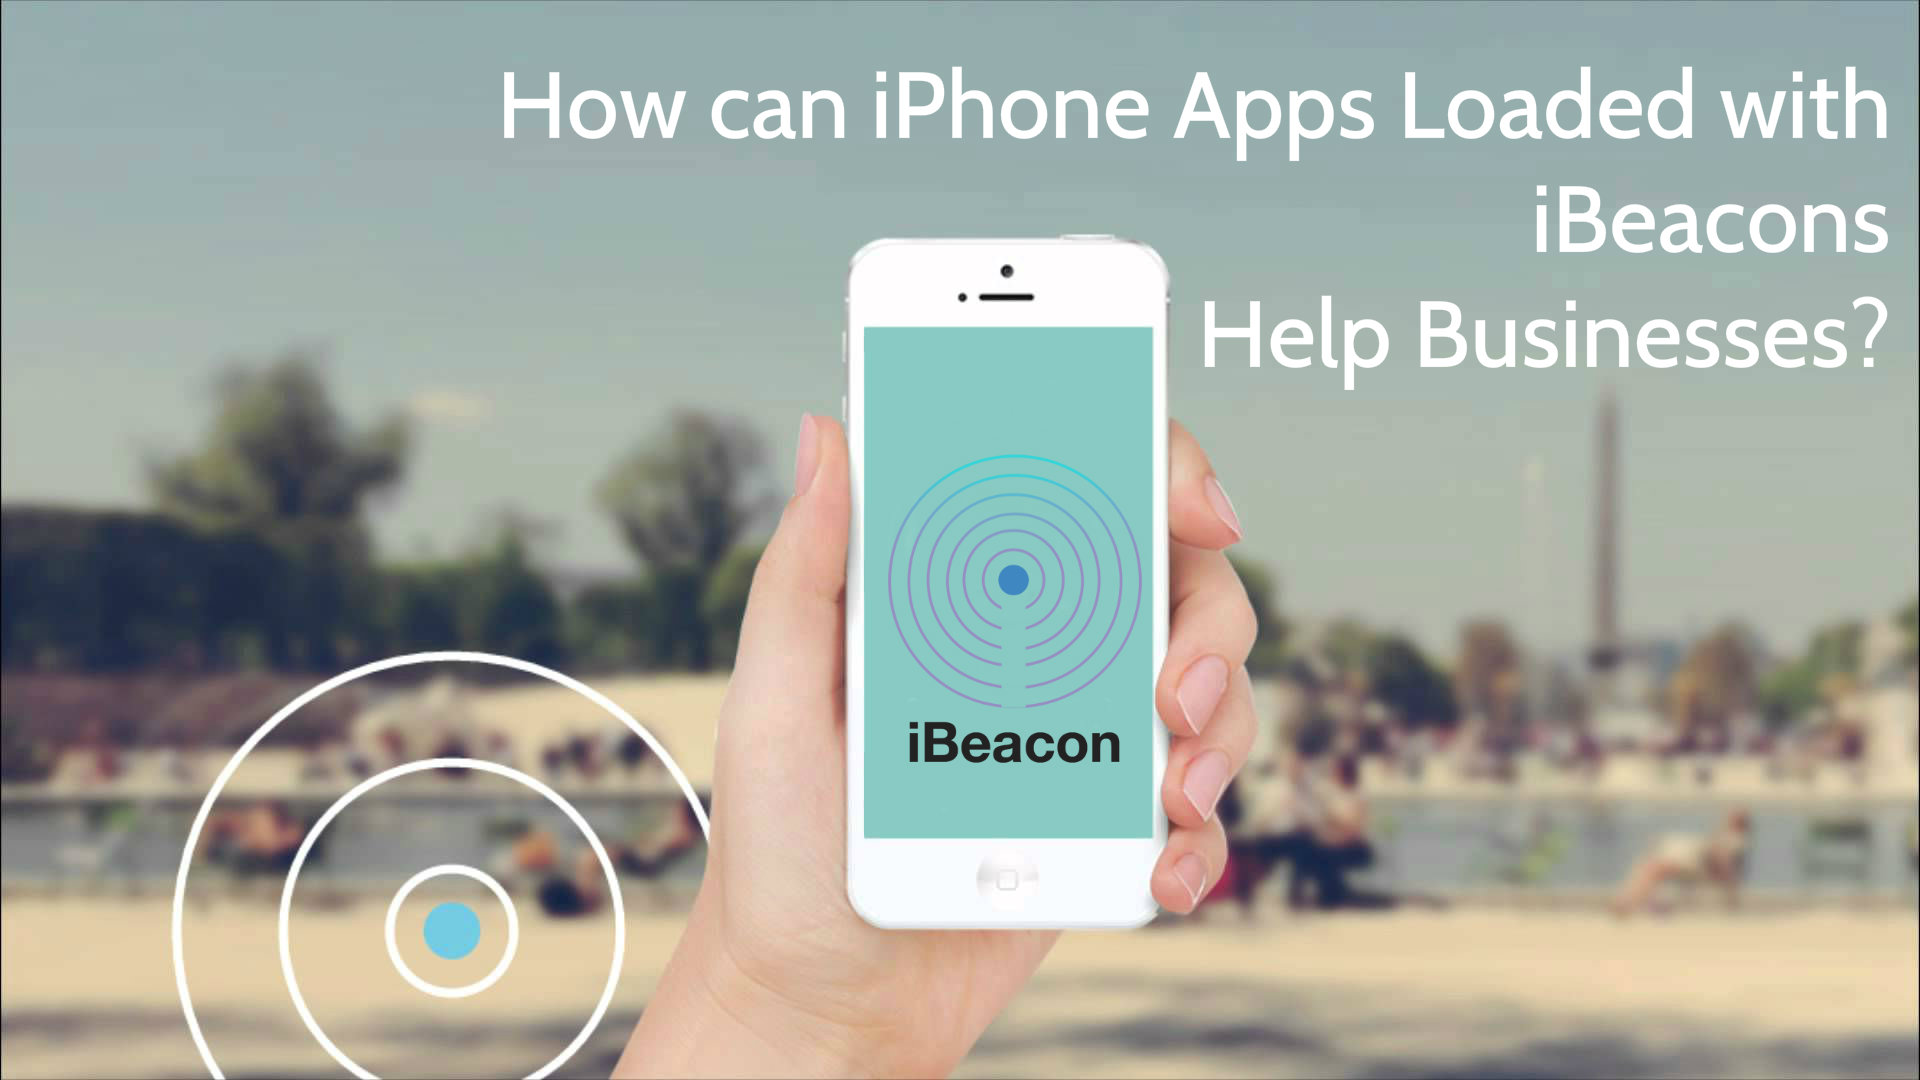 How can iPhone Apps loaded with iBeacons help Businesses